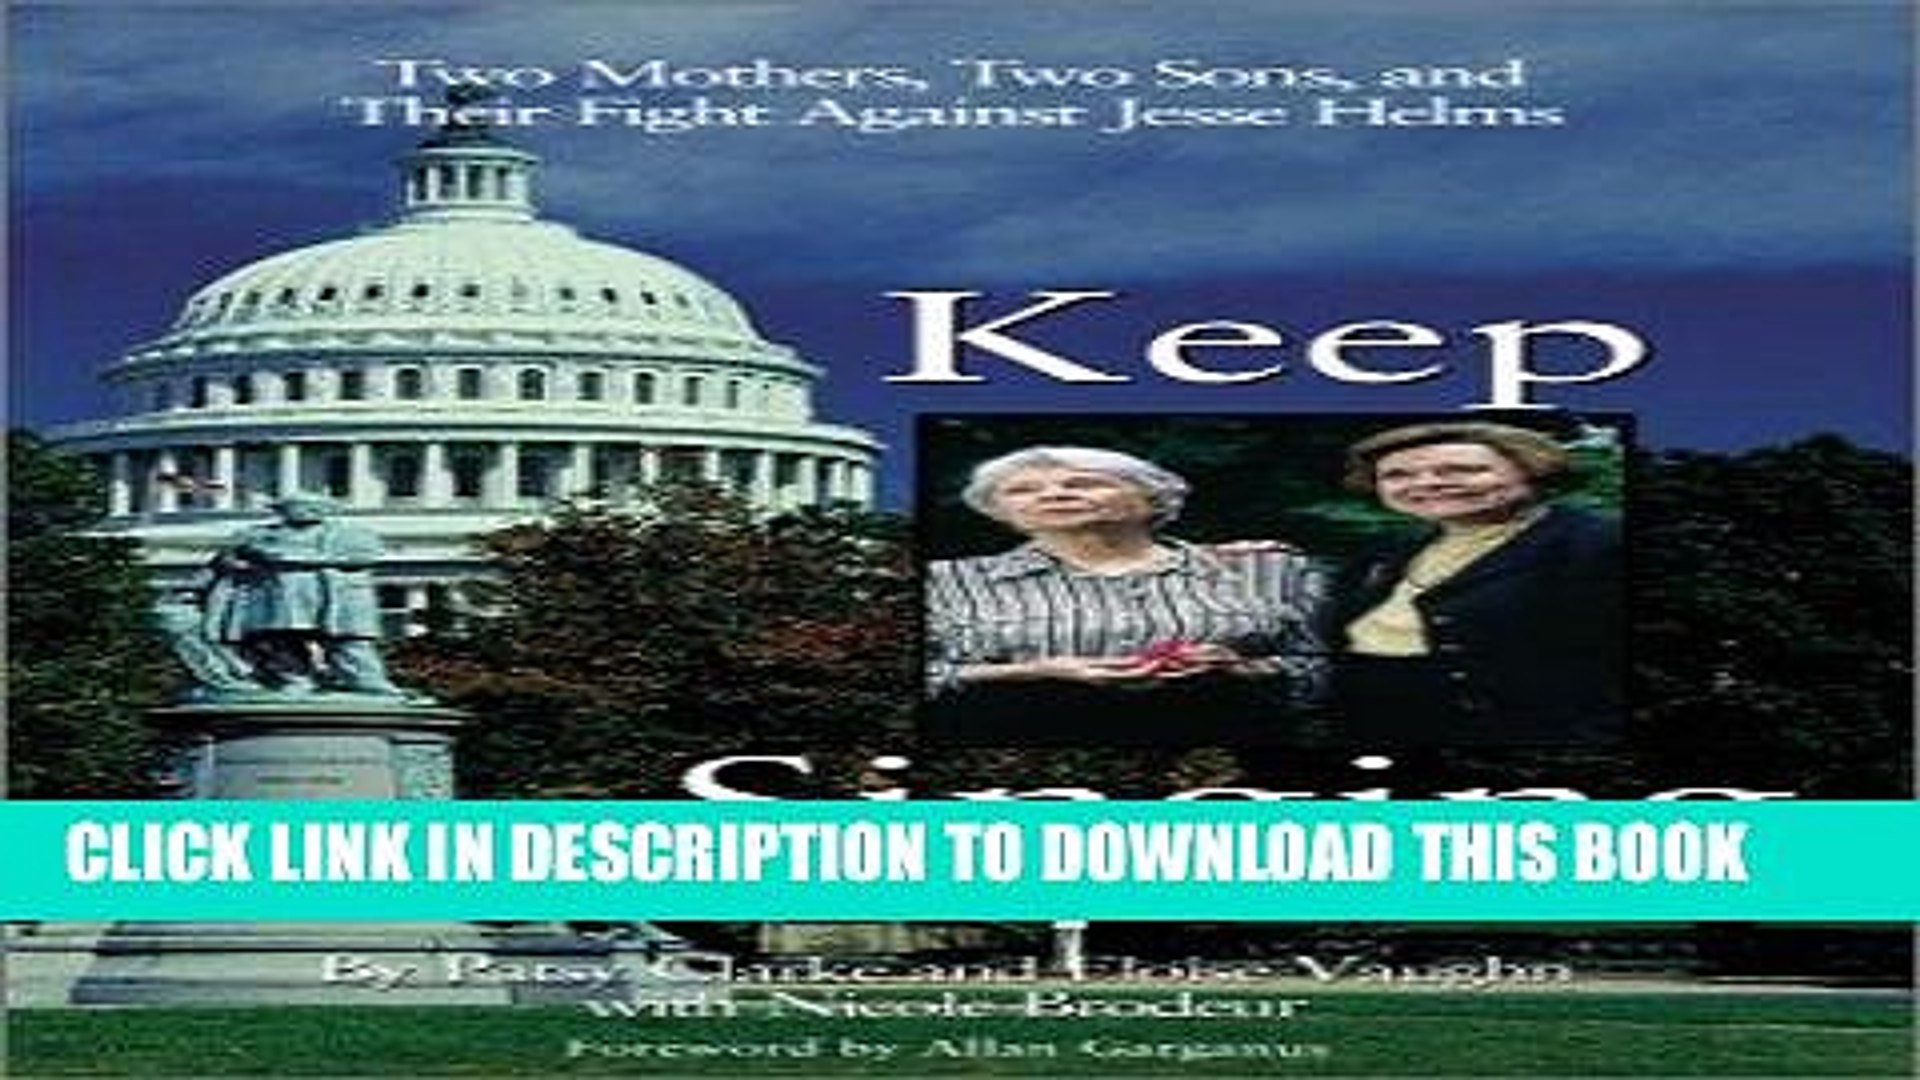 [PDF] Keep Singing: Two Mothers, Two Sons, and Their Fight Against Jesse Helms Full Online